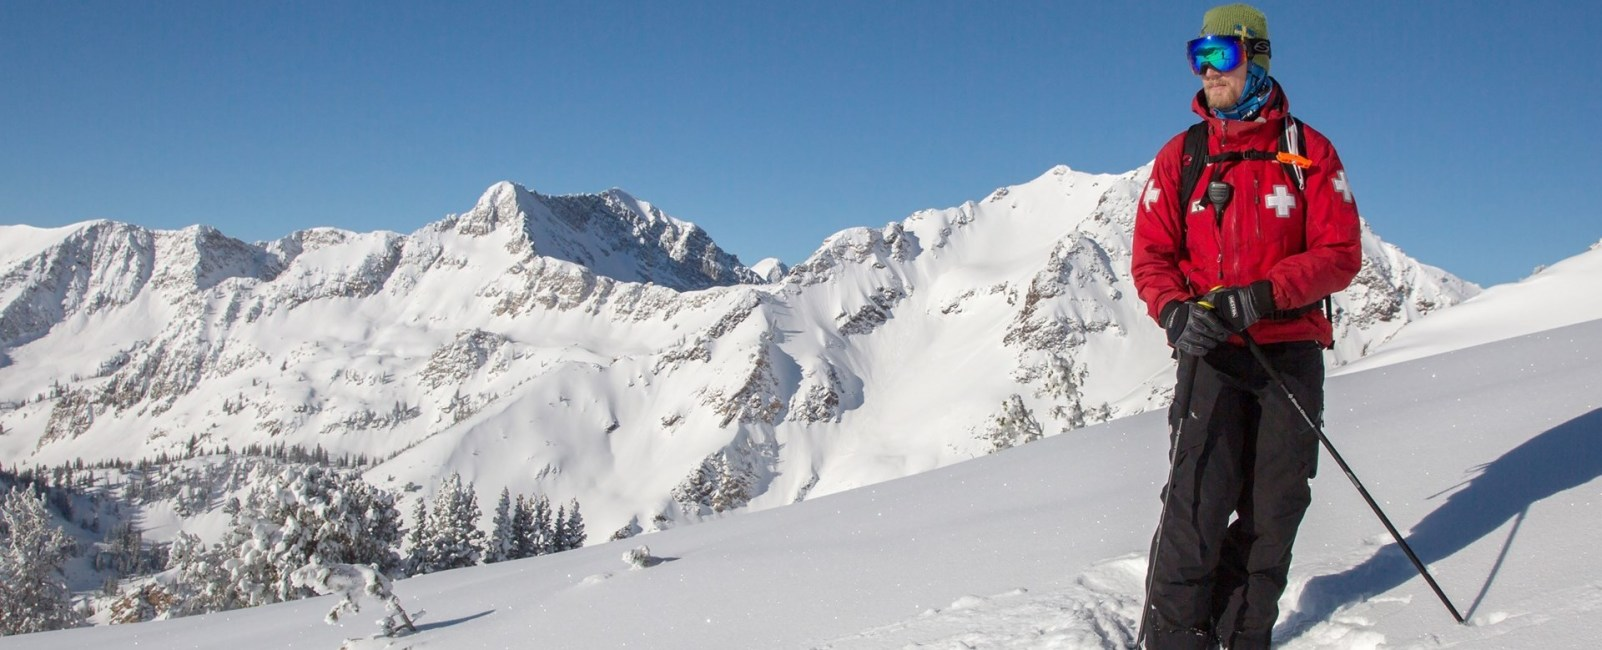 Snowbird Guided Backcountry Skiing